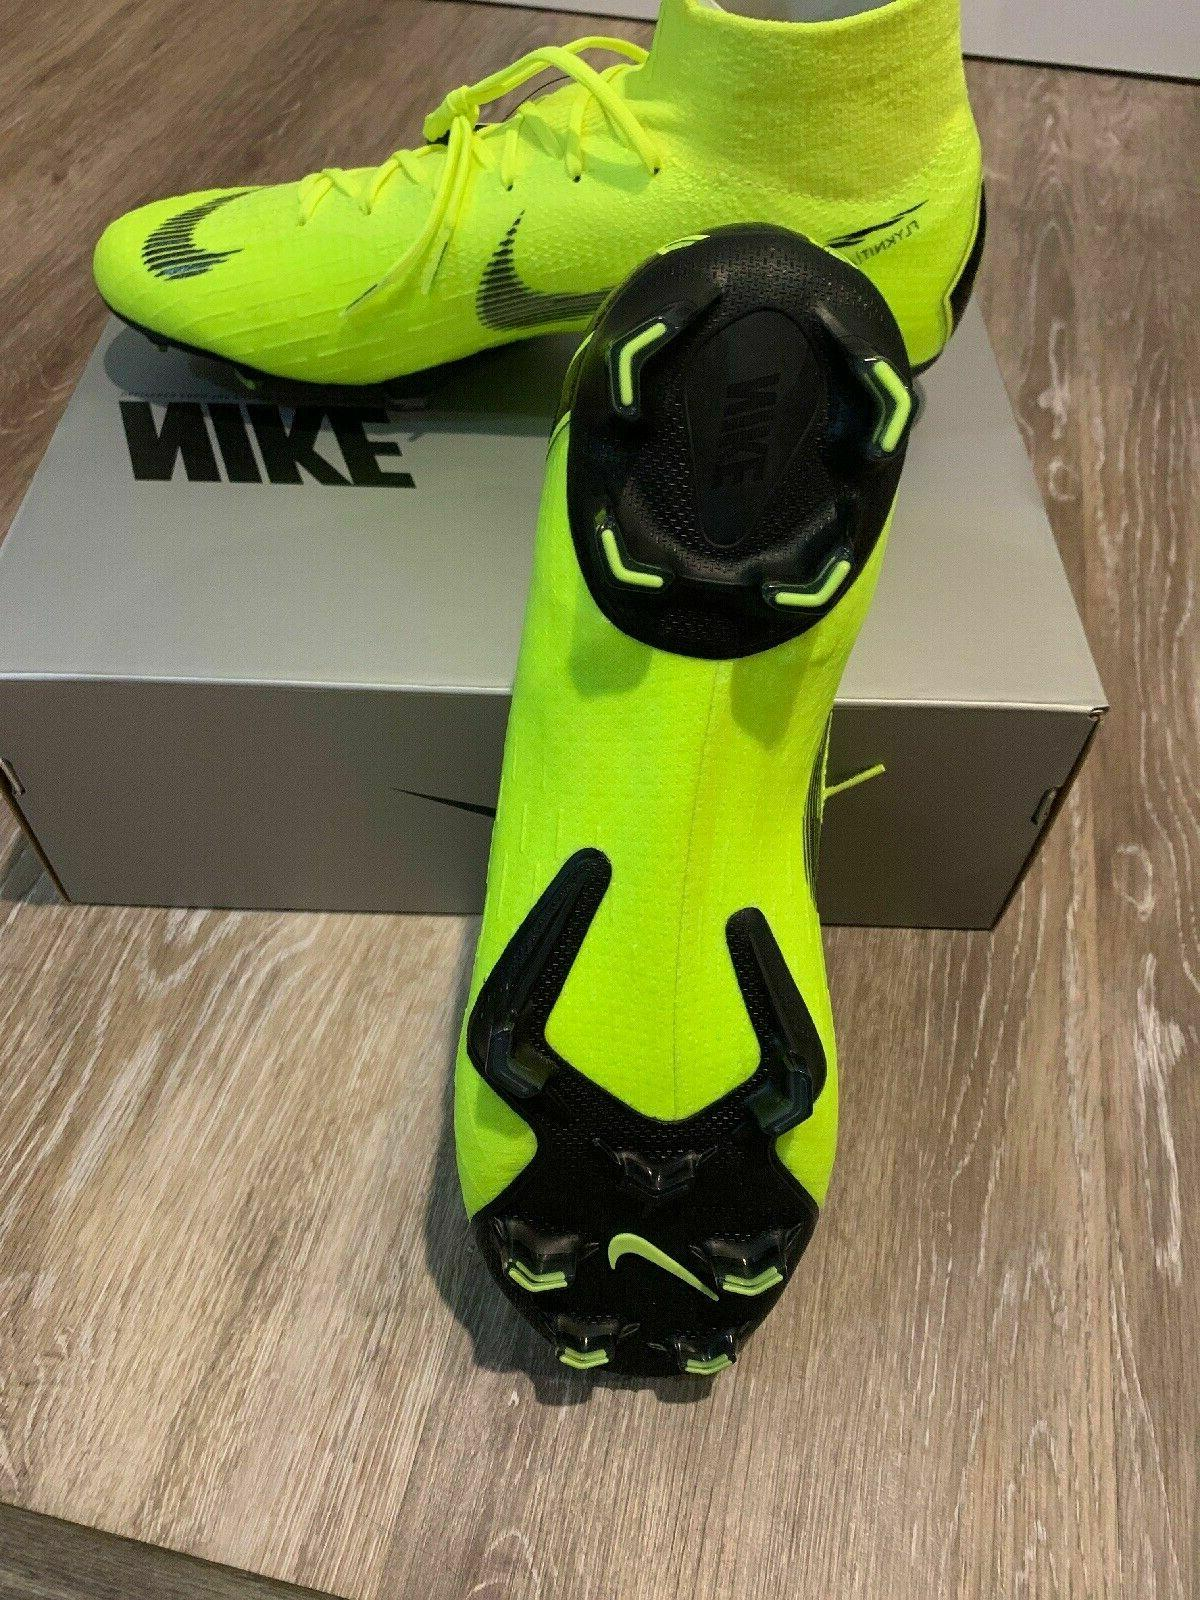 Nike Elite FG Volt/Blk Cleats